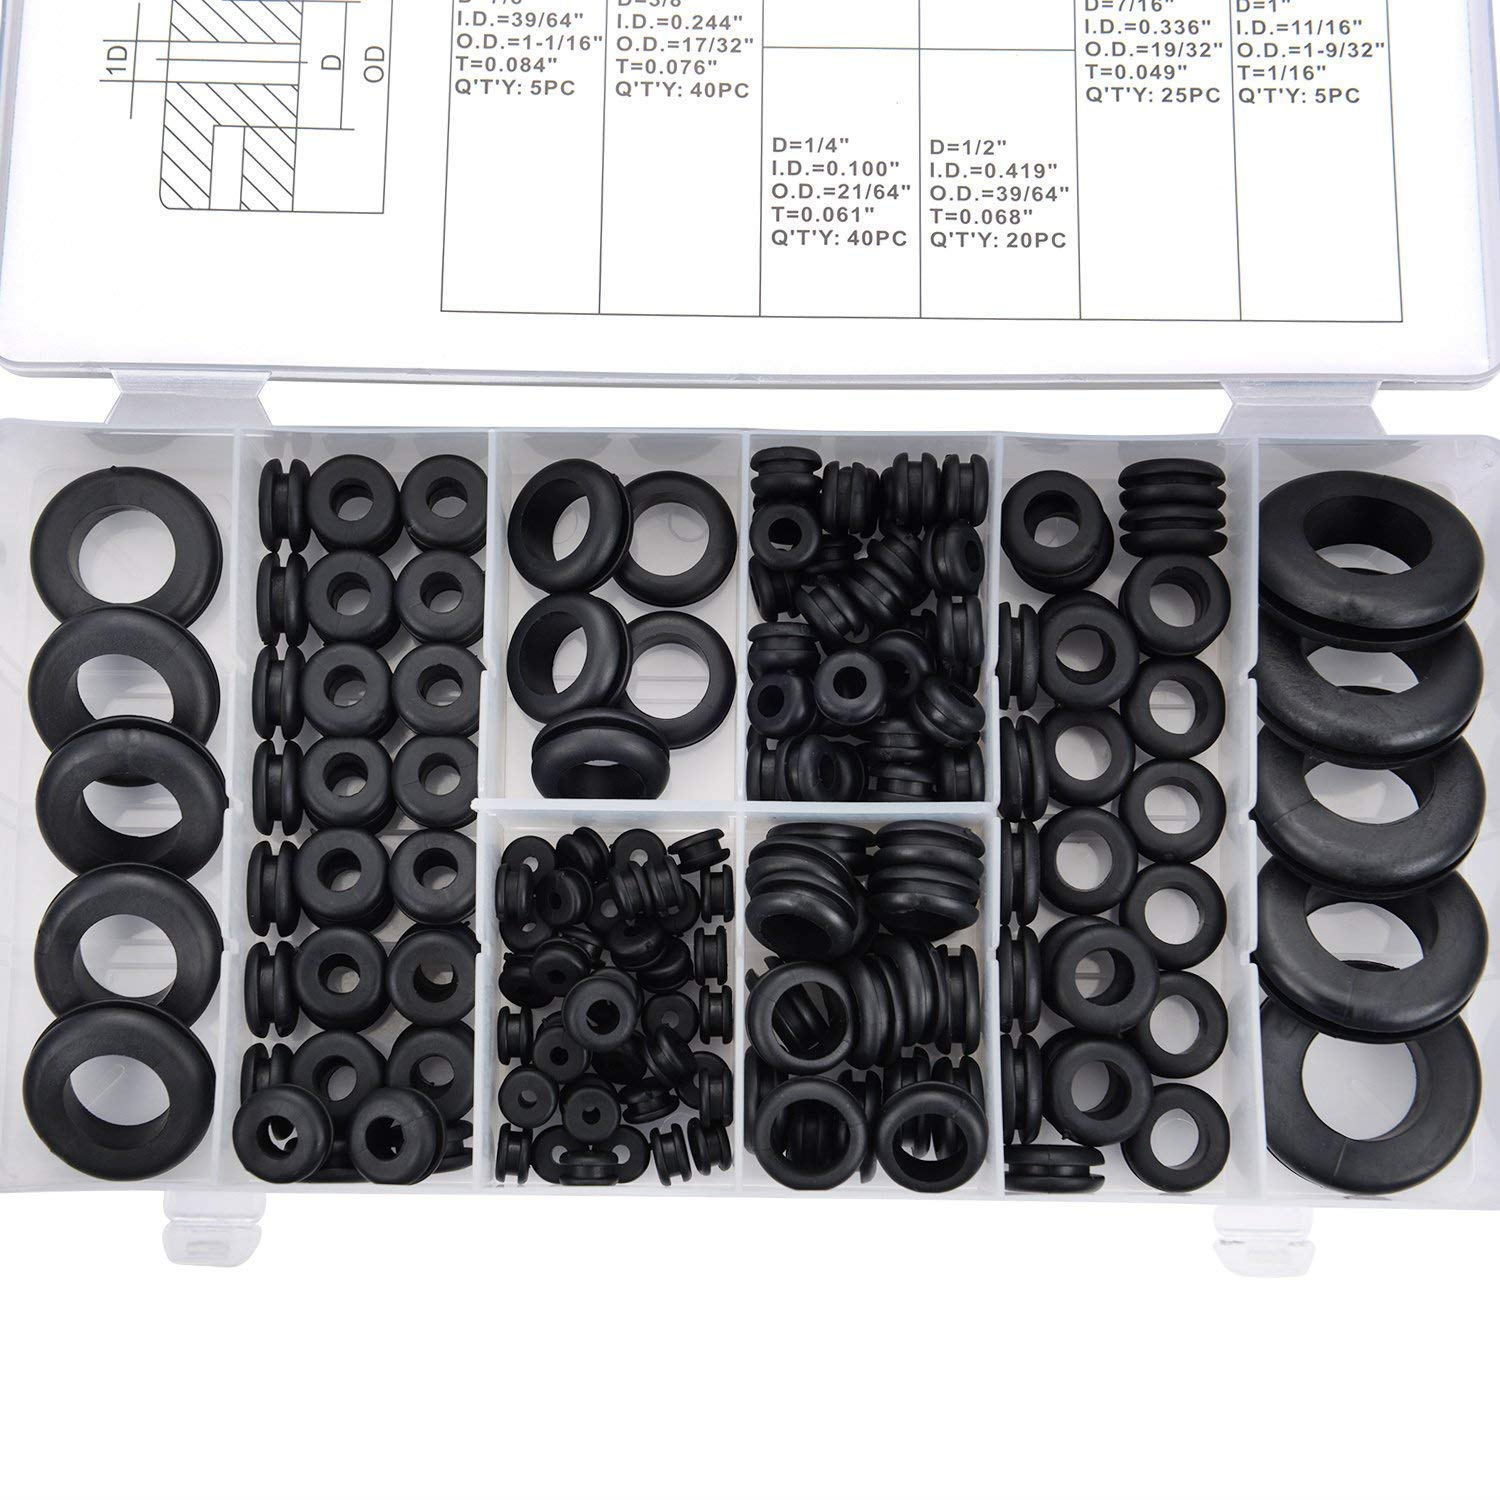 Allnice Black Rubber Grommet Eyelet Ring Electrical Conductor Gasket Wiring Grommets Assortment Kit For Protecting Wires